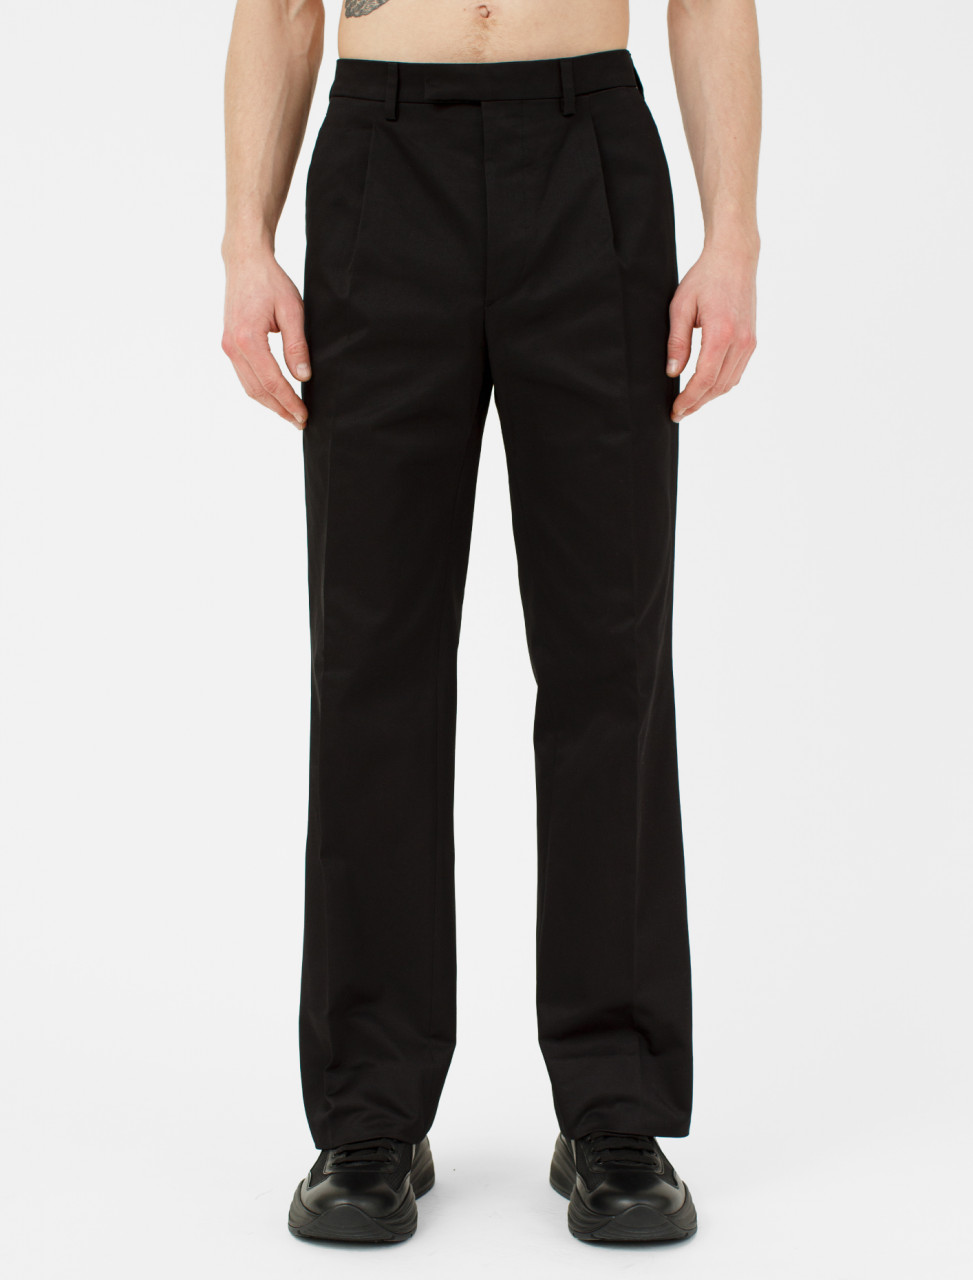 Chino Trouser in Black